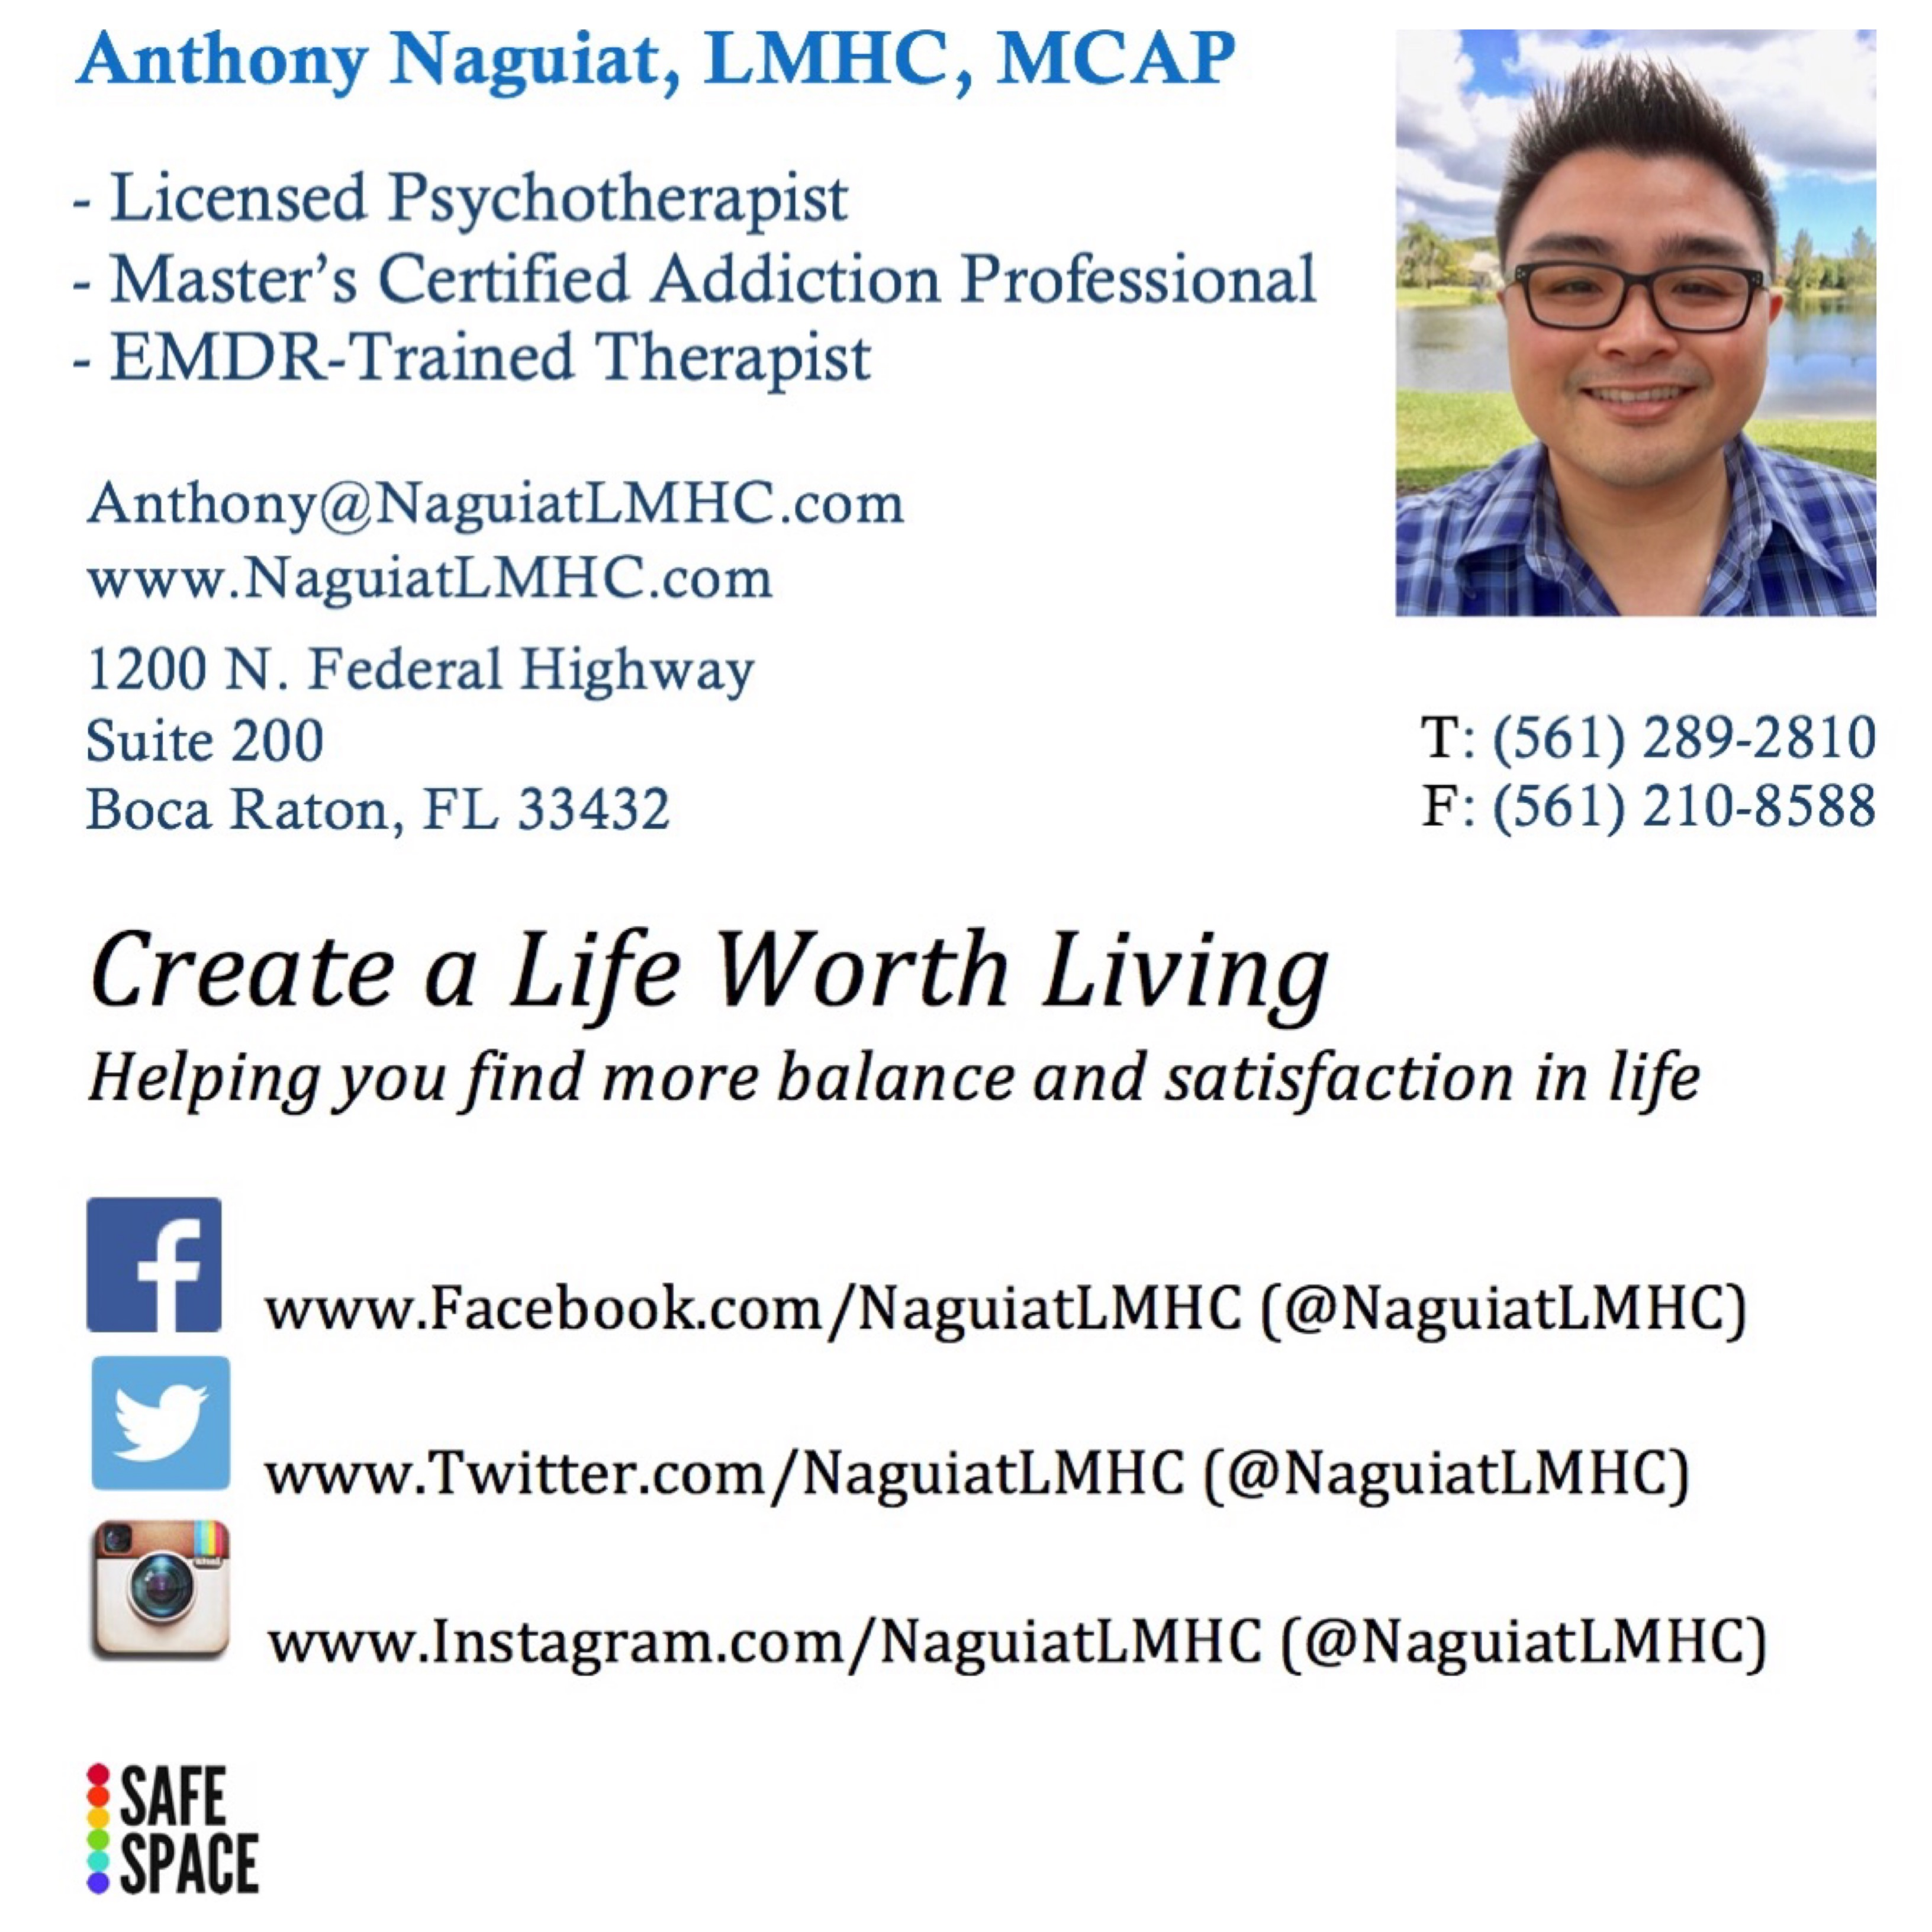 Anthony Naguiat LMHC MCAP - EMDR and Trauma Therapy in Boca Raton, FL